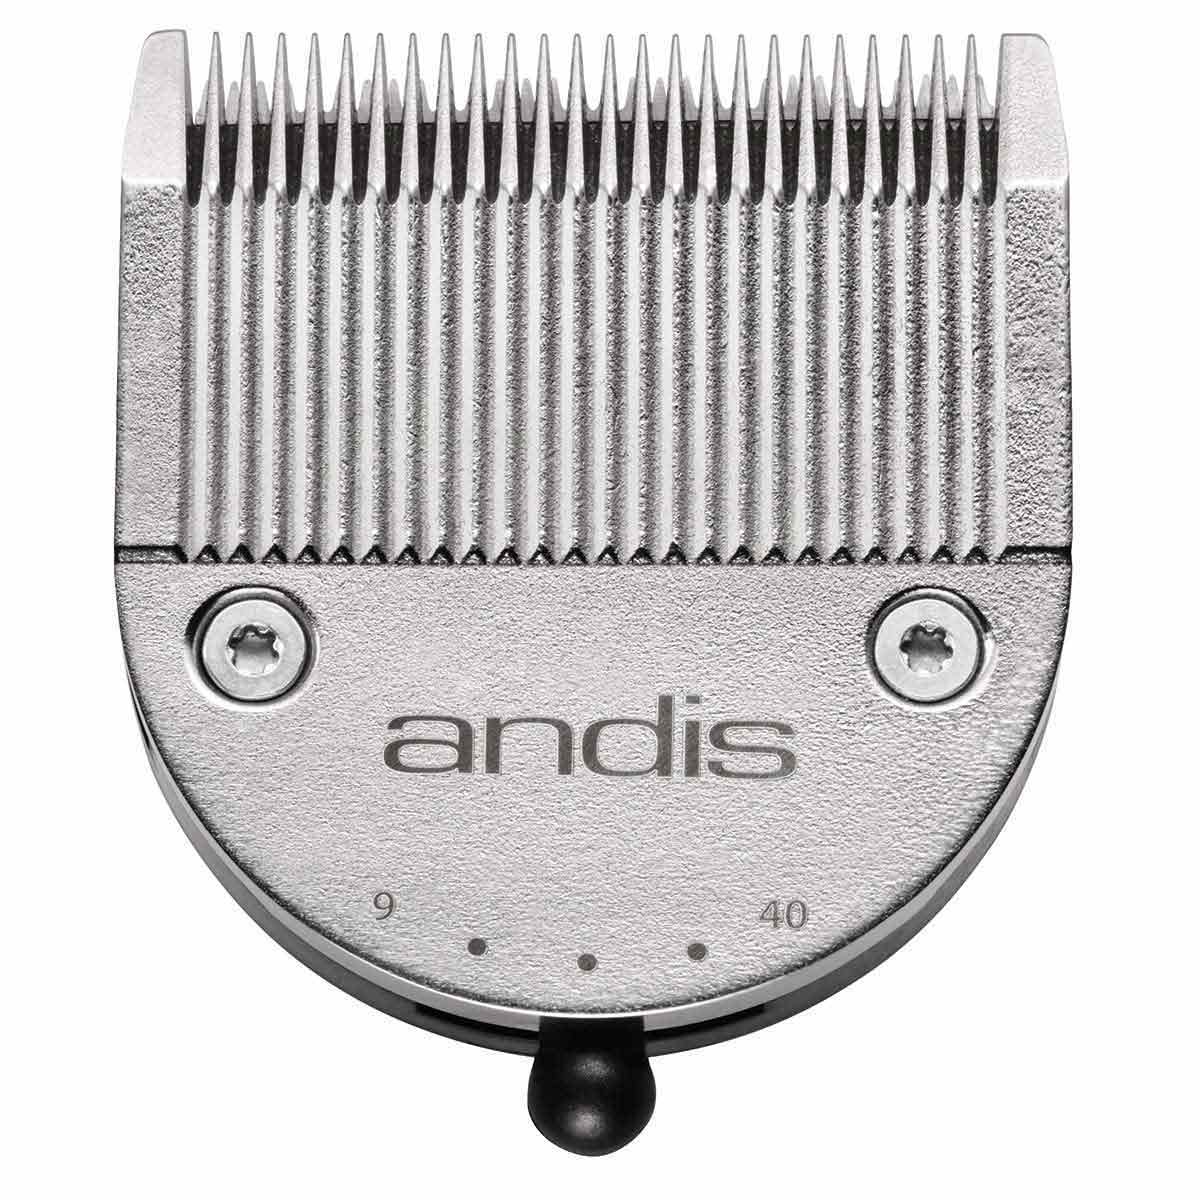 Andis 5-Position Adjustable Blade available at Ryan's Pet Supplies